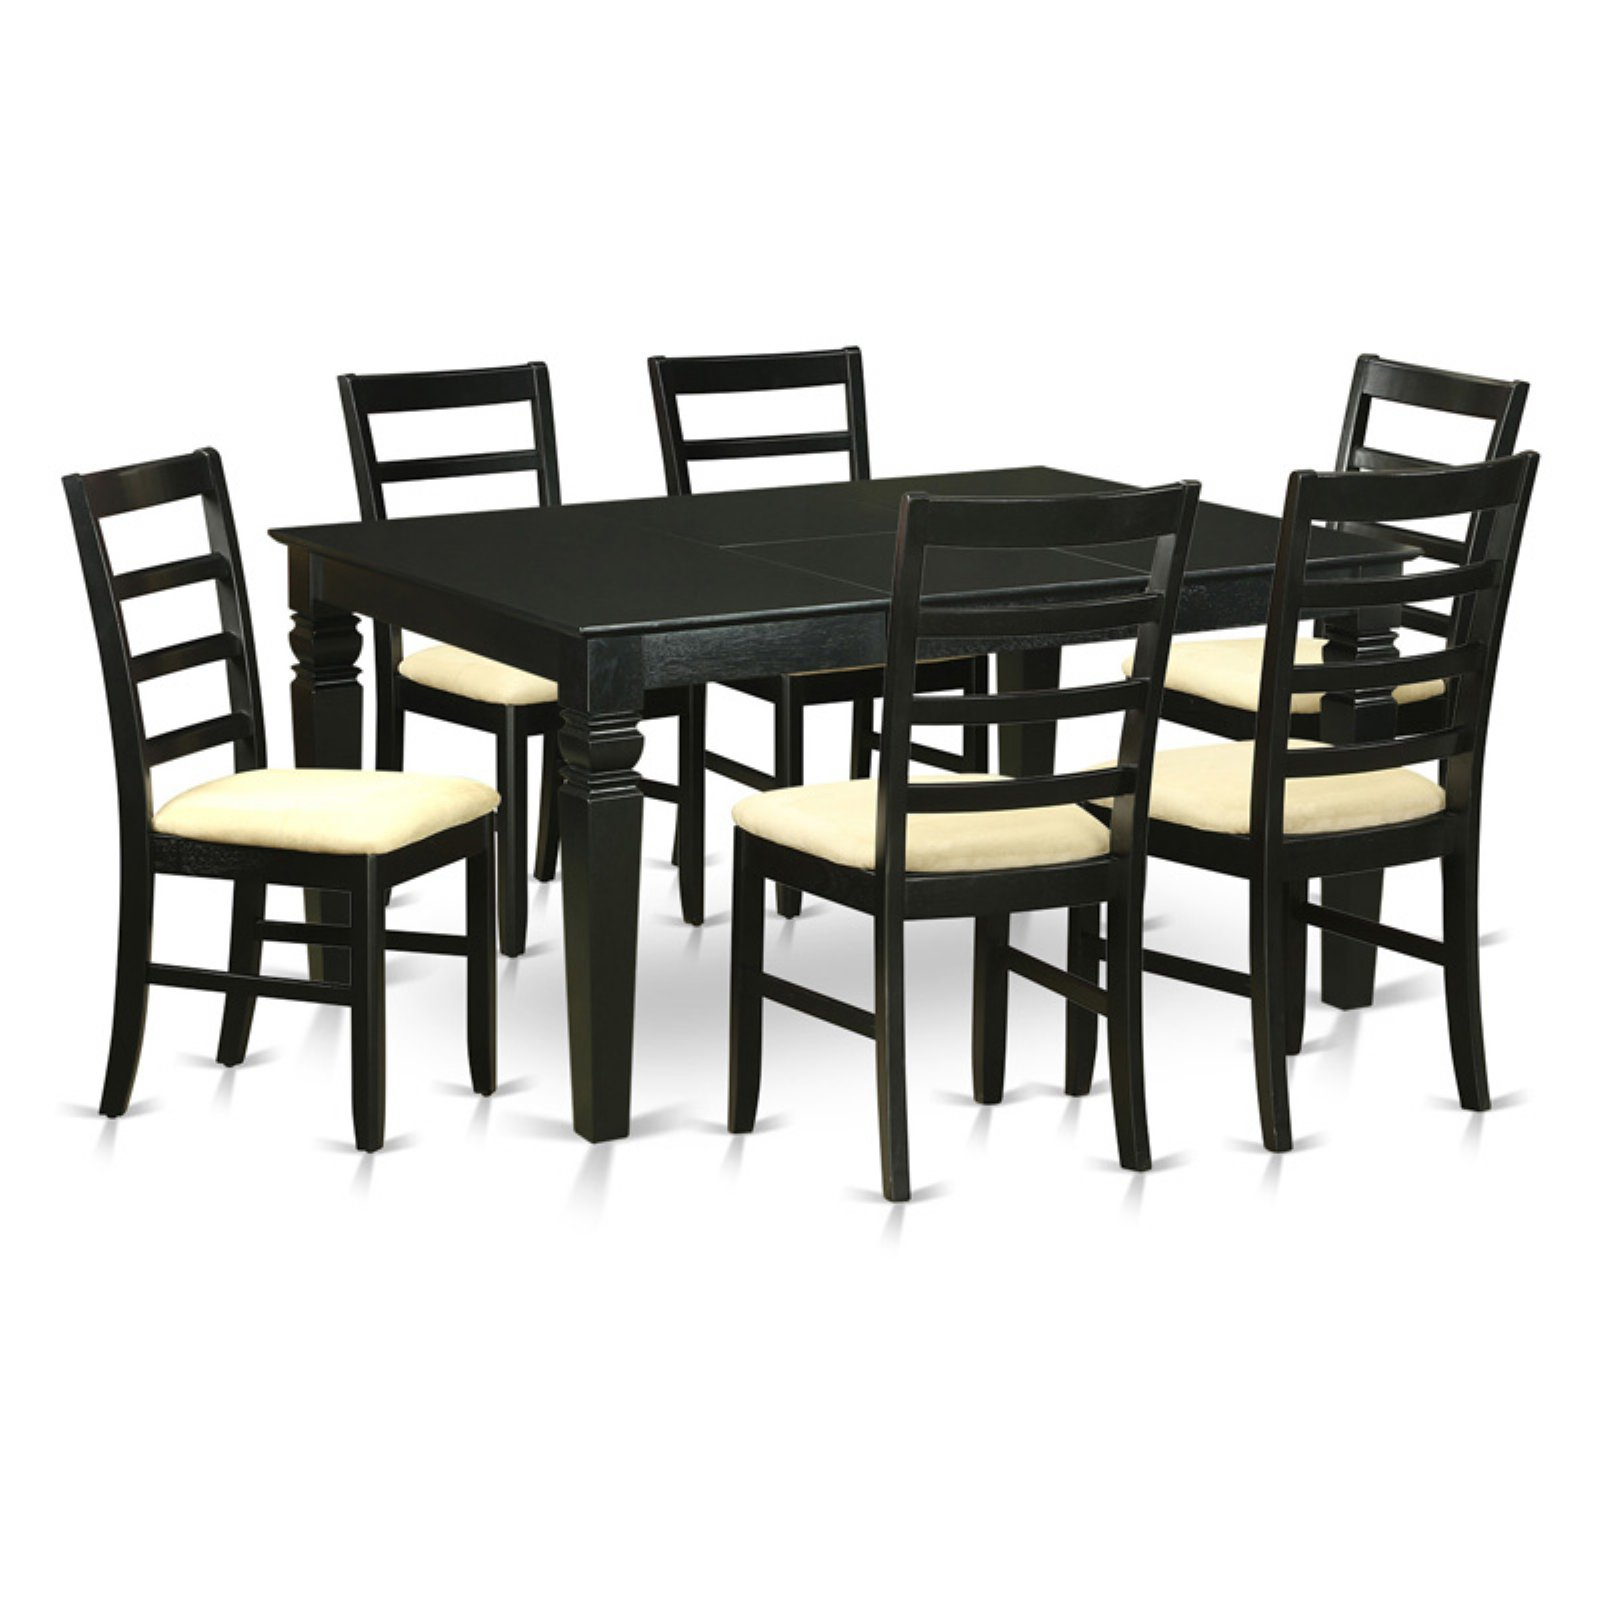 East West Furniture Weston 7 Piece Shaker Dining Table Set